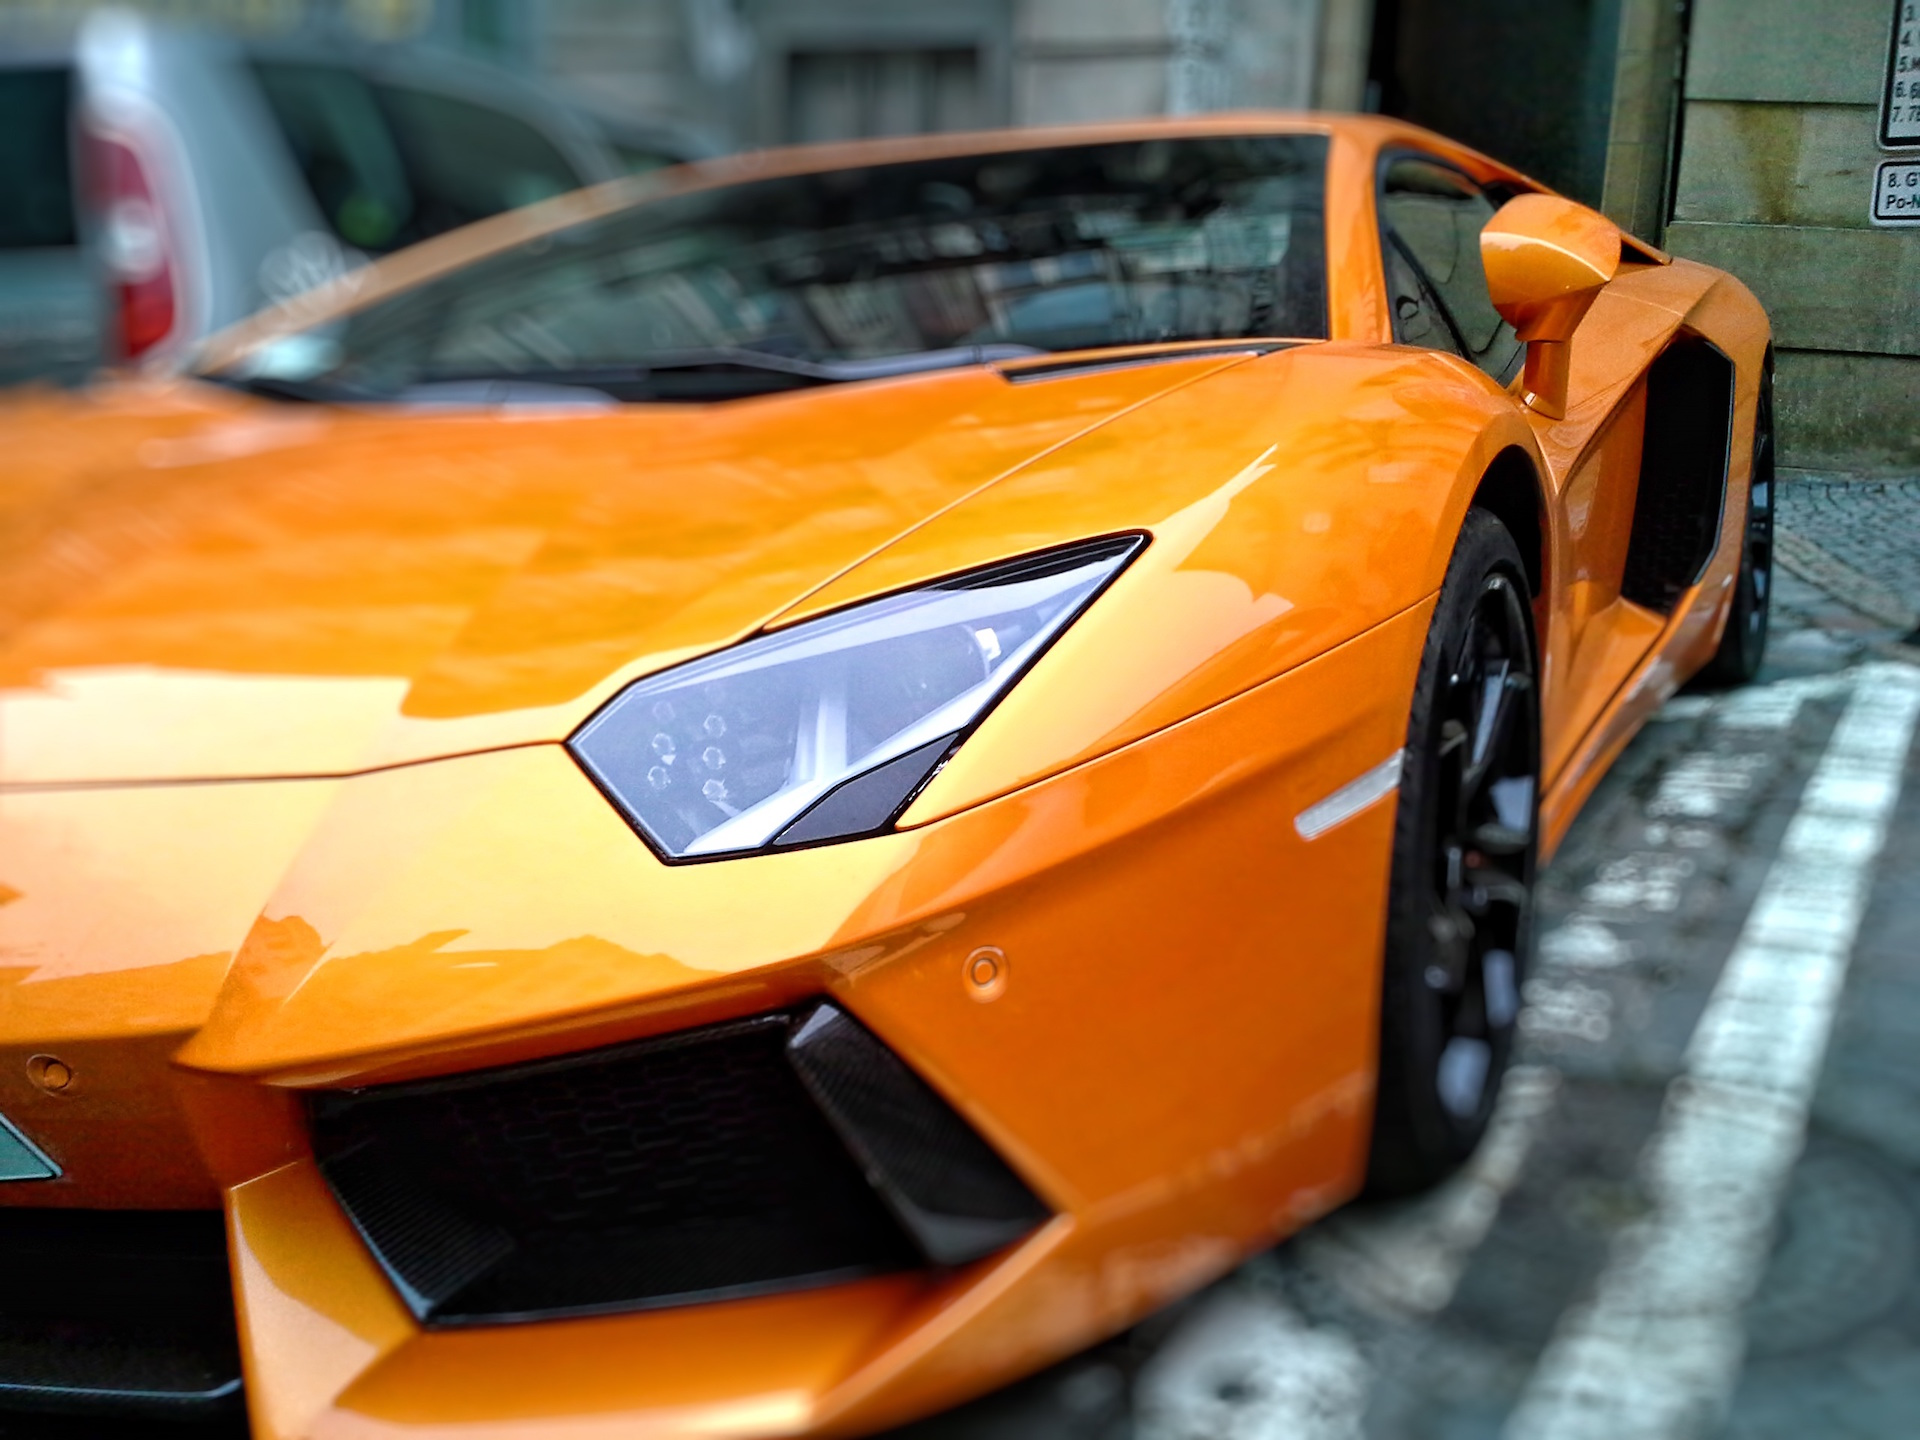 voiture, Lamborghini, luxe, sport, Orange - Fonds d'écran HD - Professor-falken.com